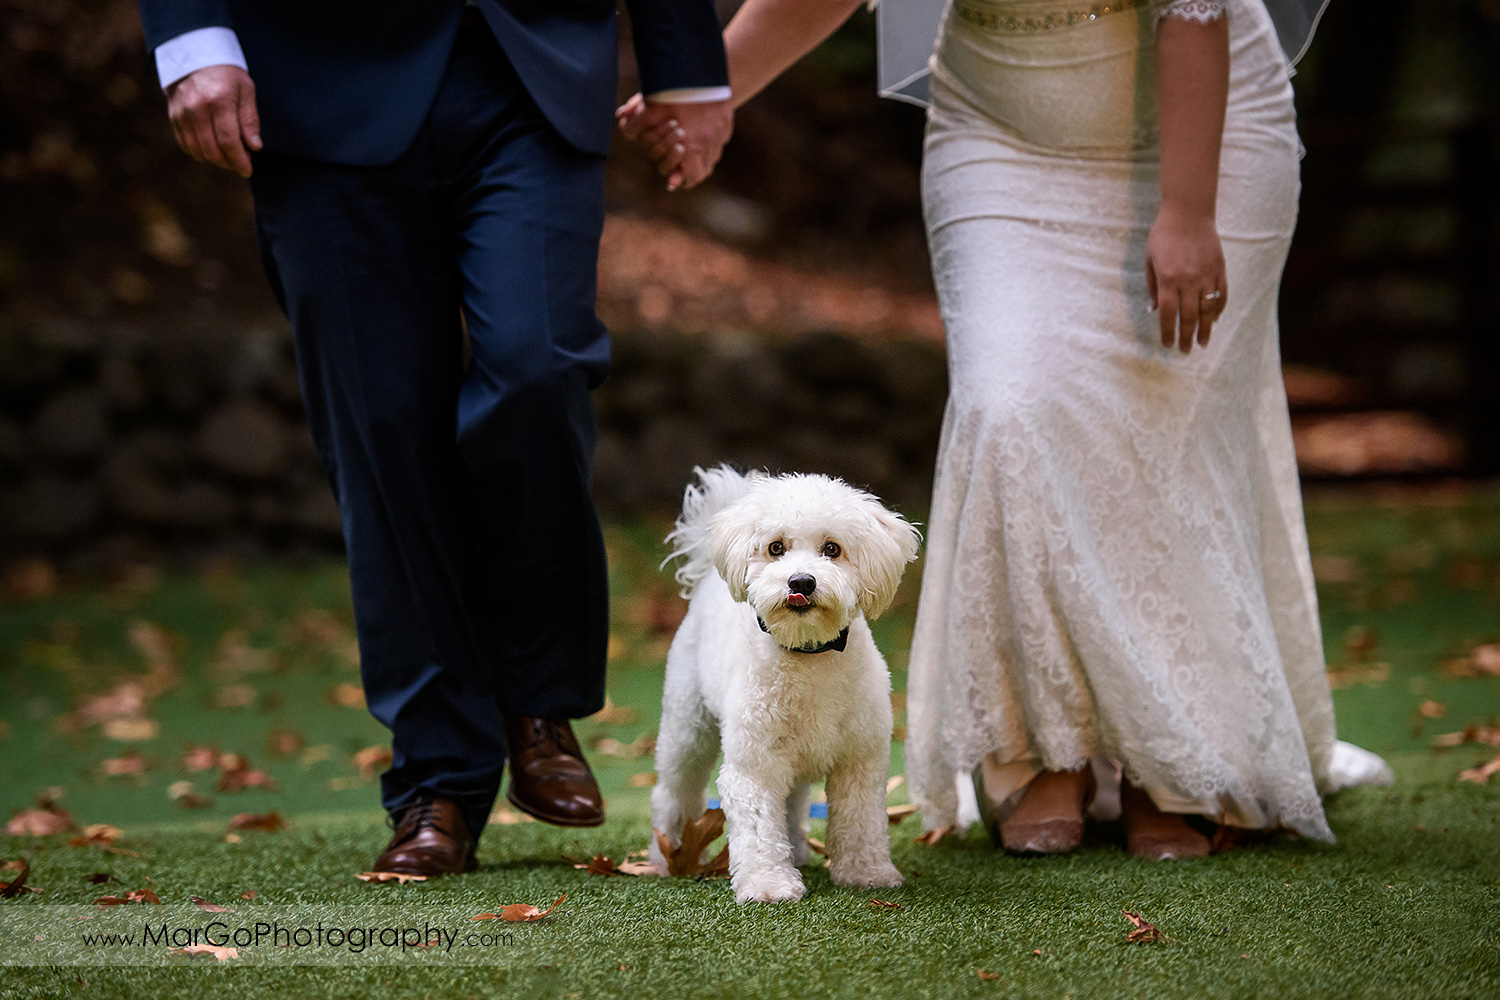 colse-up of white dog between bride and groom legs at Saratoga Springs Cathedral Grove